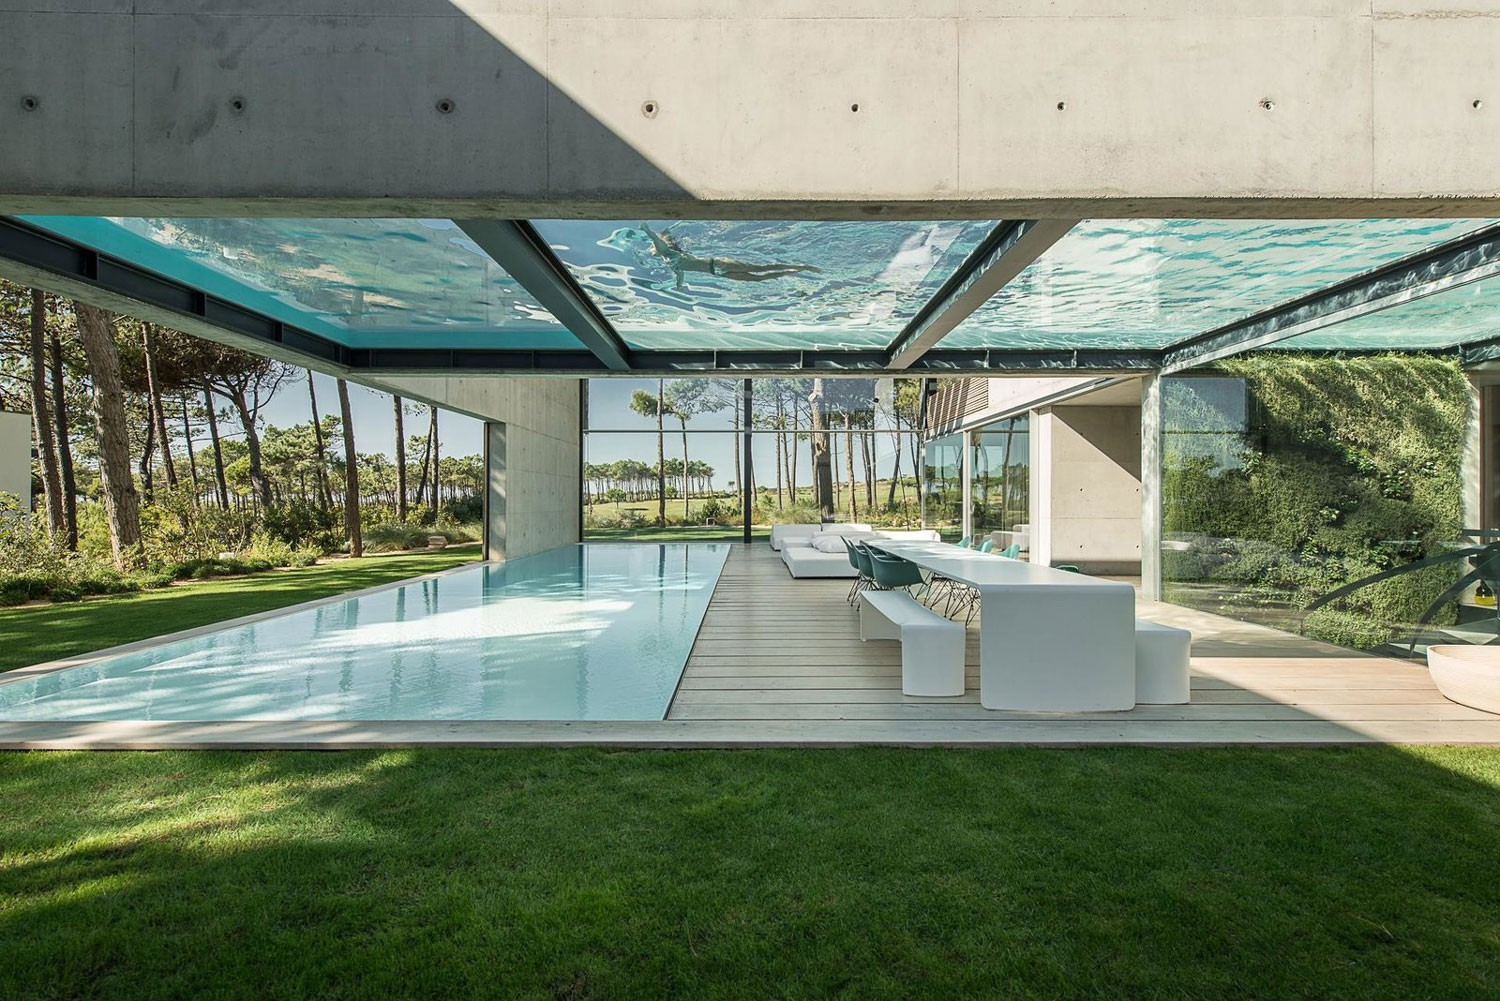 The-Wall-House-on-Portuguese-Riviera-by-Guedes-Cruz-Arquitectos-Yellowtrace-05.jpg